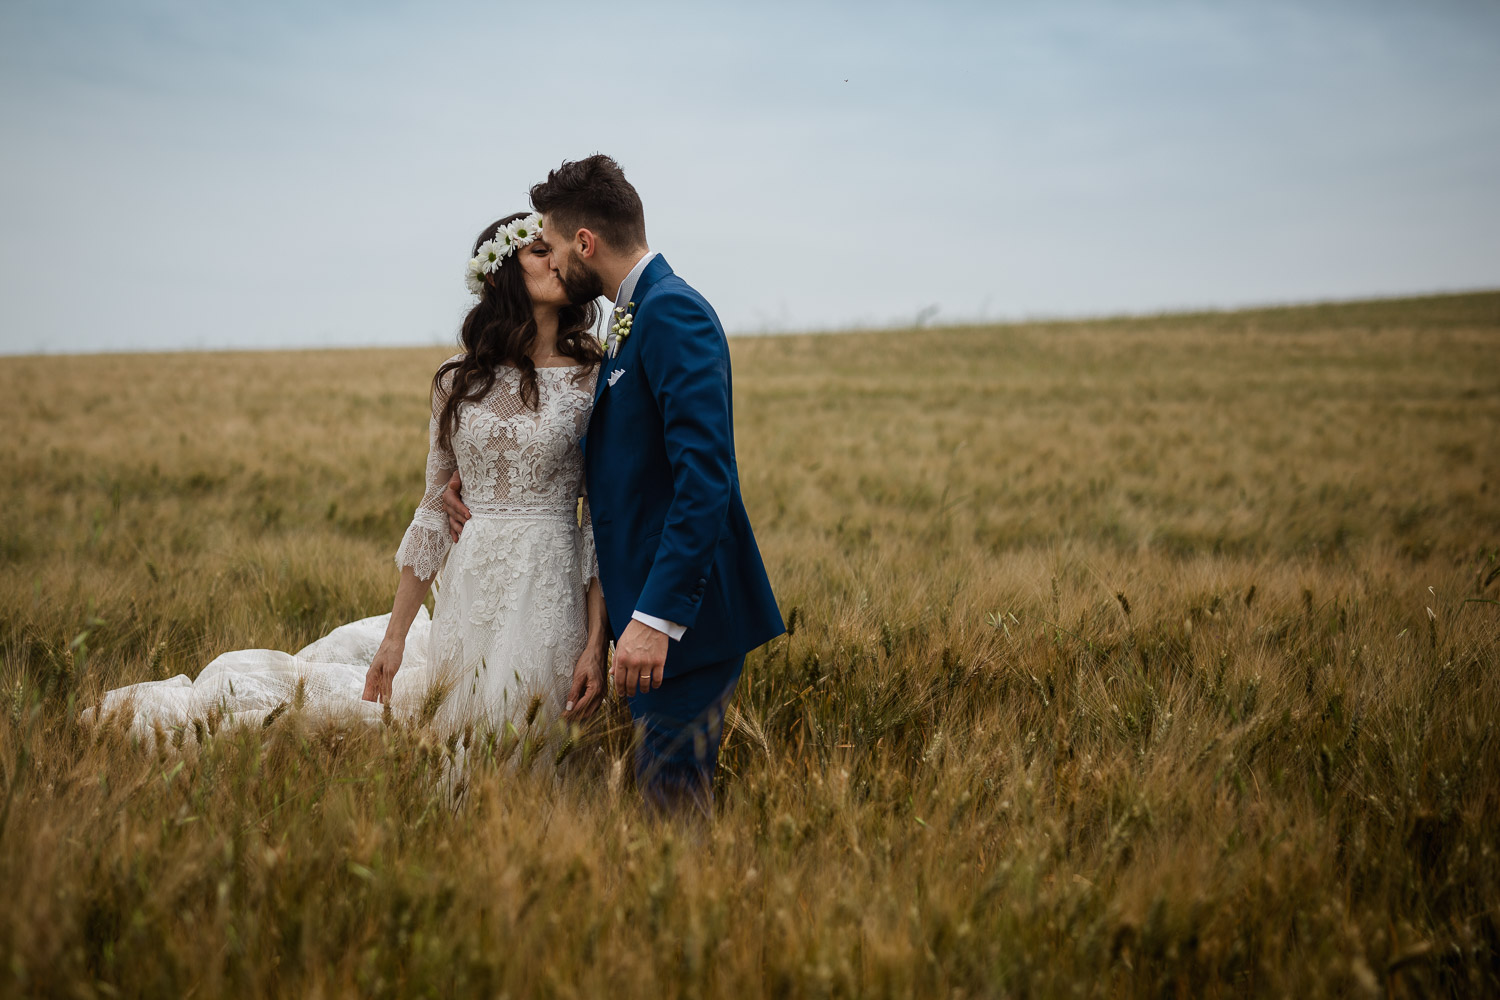 destination wedding and elopement photography in italy, le marche, fermo